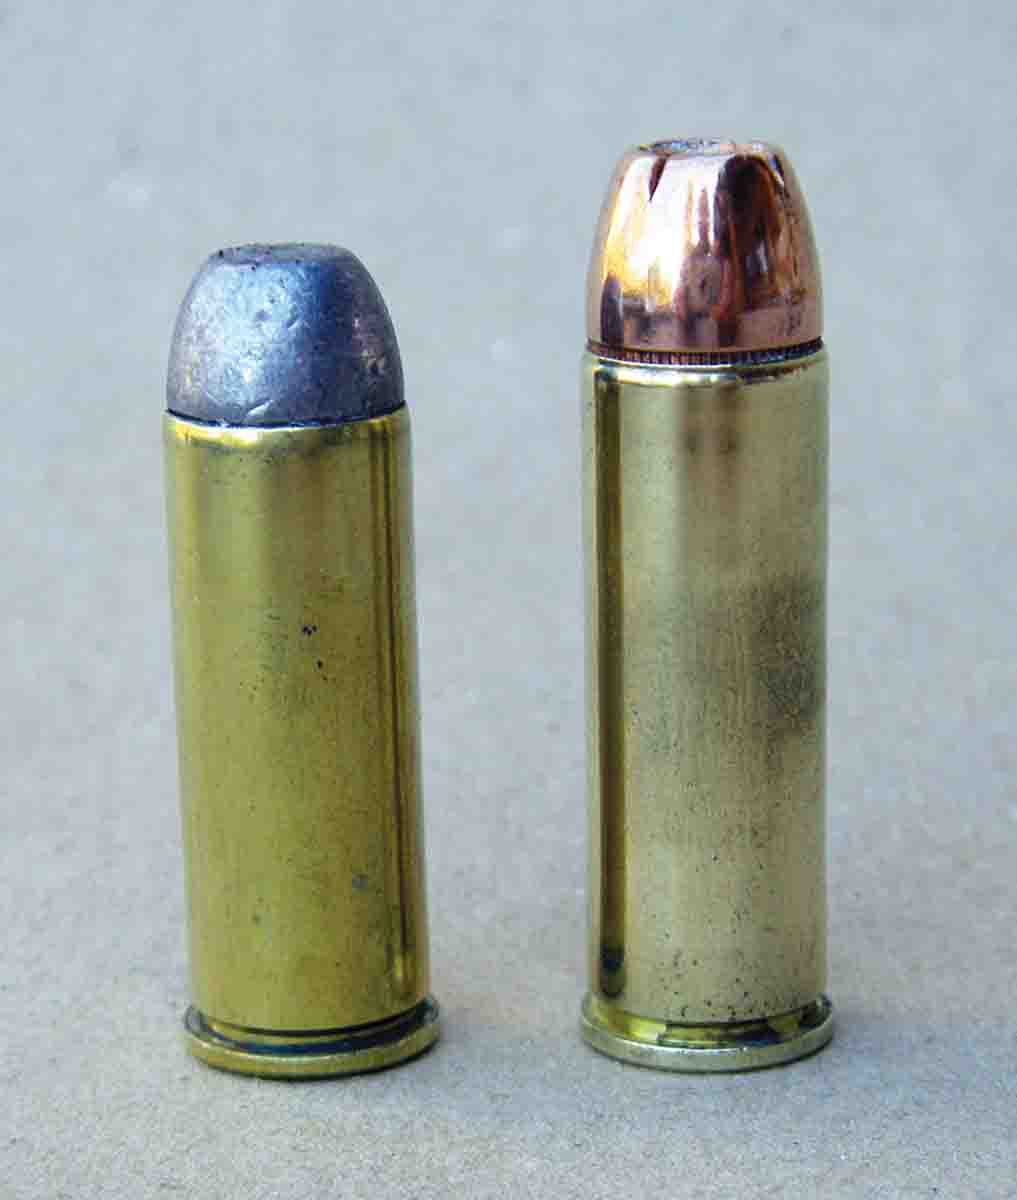 The .454 Casull (right) is a magnum version of the .45 Colt (left), but rather than being loaded at 14,000 psi, maximum average pressure is 65,000 psi.